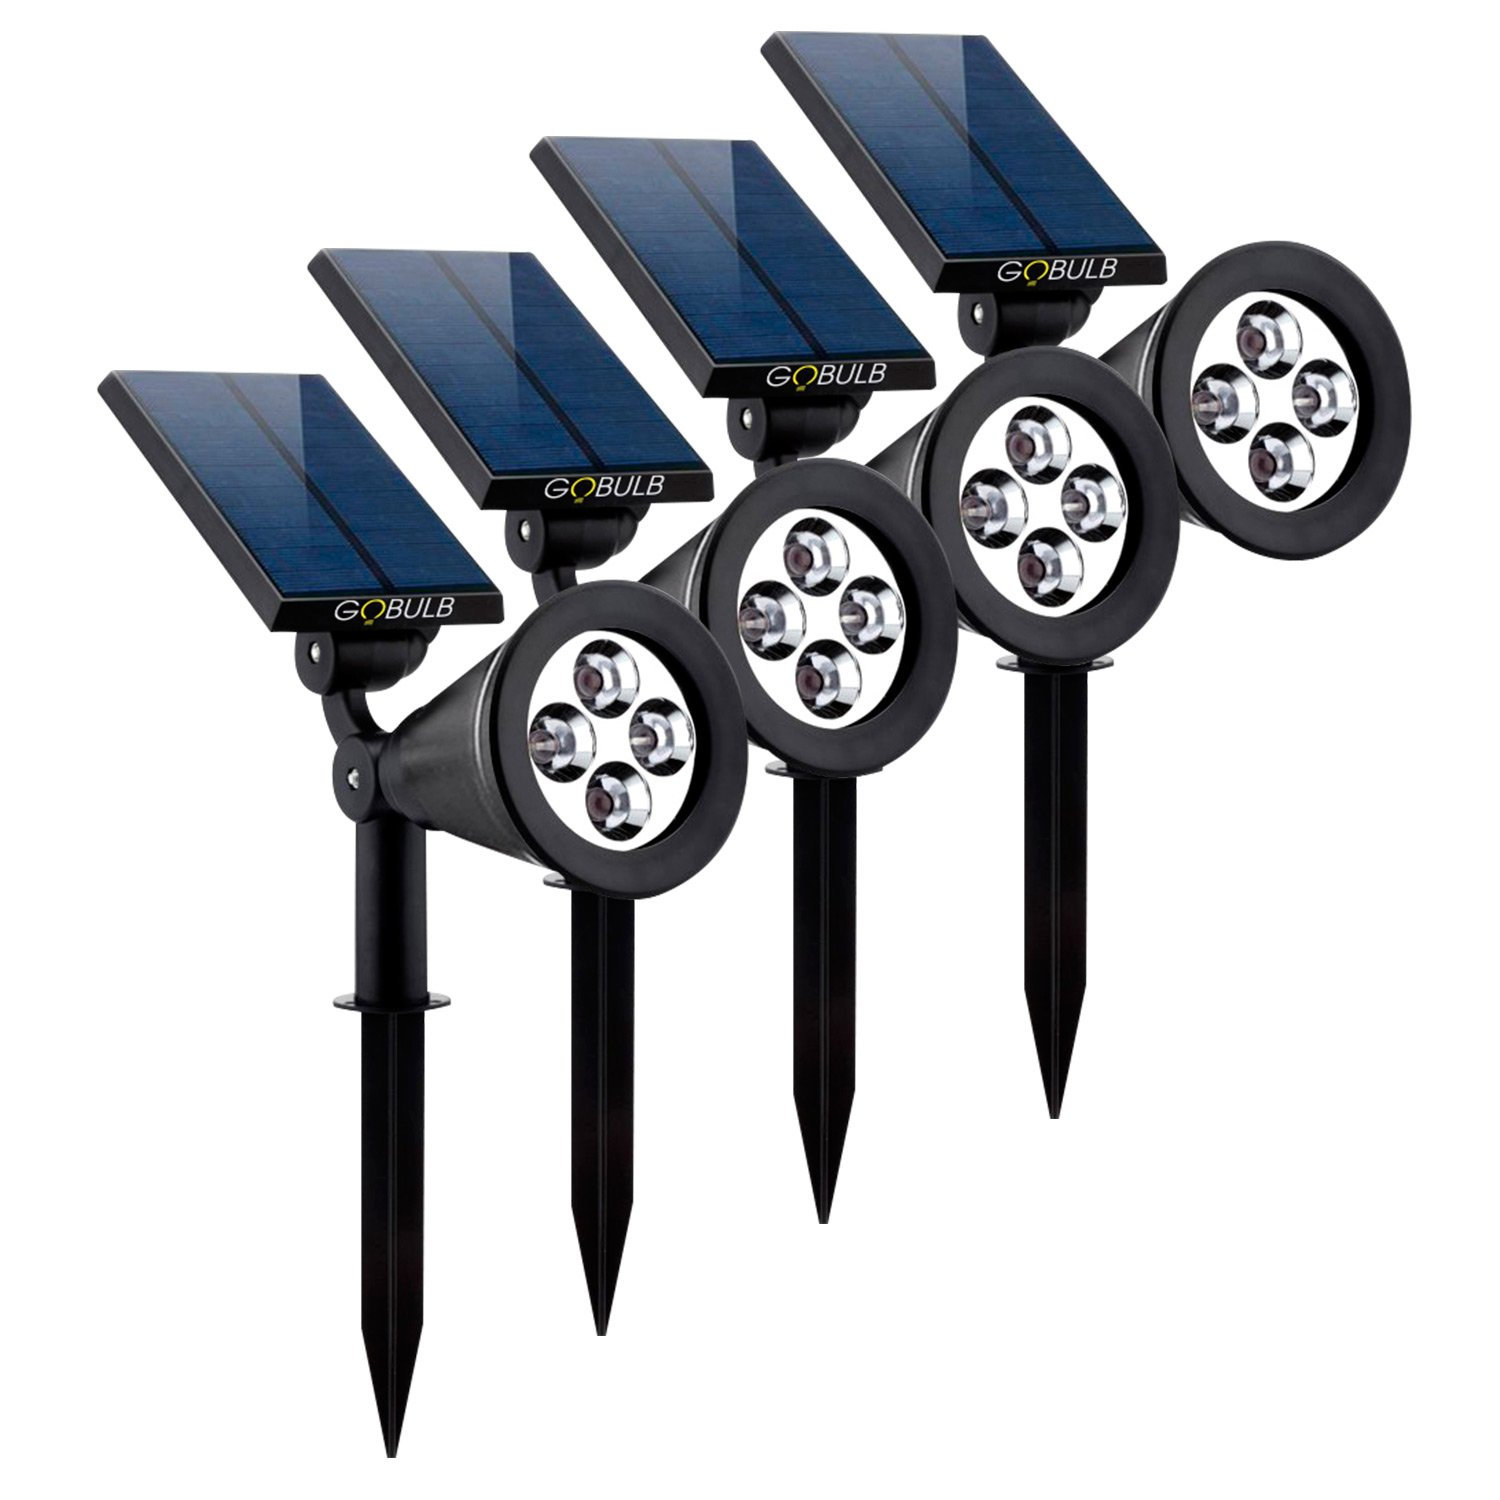 Solar Spot Lights Outdoor, Waterproof 2-in-1 Outside Solar Powered Spotlight Led Lighting Auto On/Off for Pathway, Walkway, Patio, Yard, Garden and Landscape 4-Pack by GOBULB